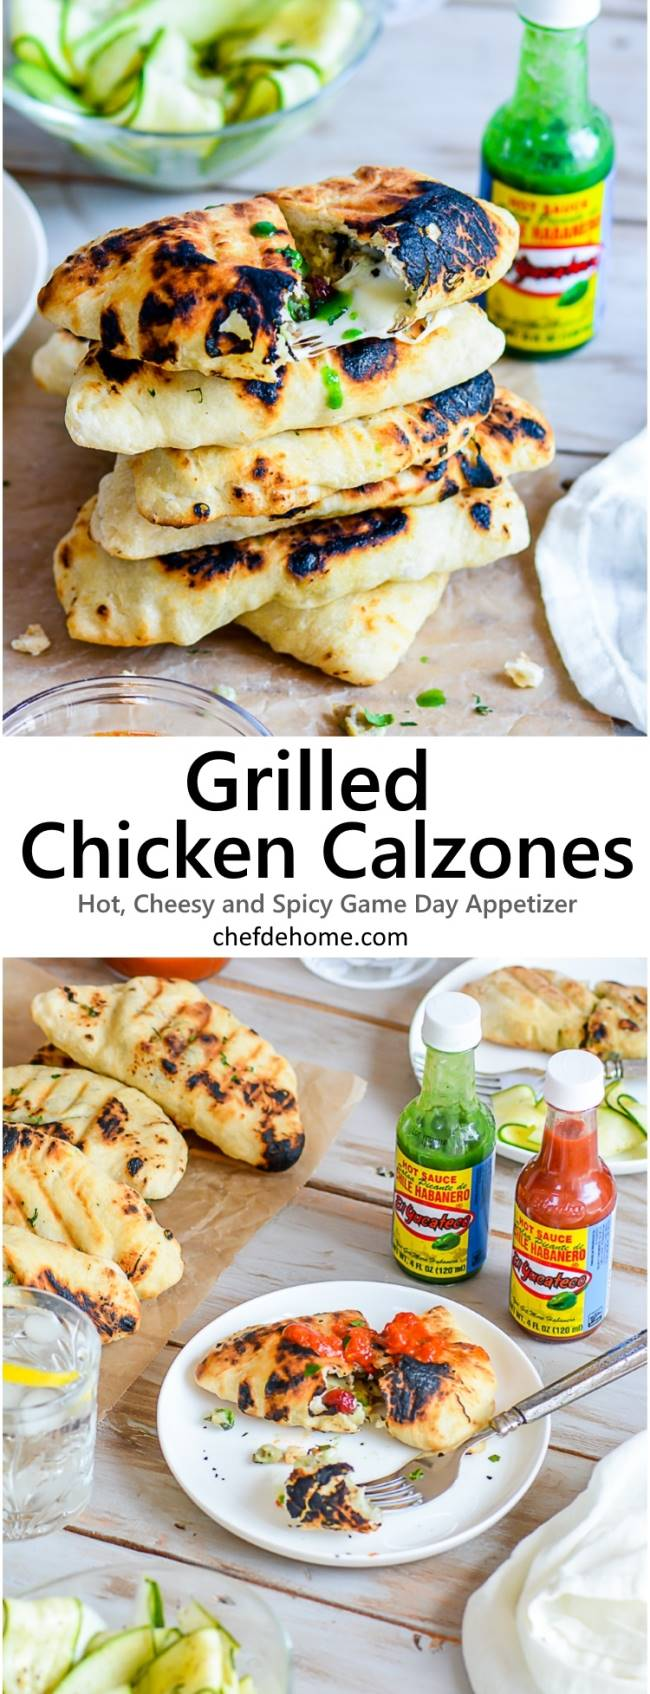 Easy Homemade Grilled Hot Cheesy Chicken Calzones served with Marinara Sauce for hosting Game Day party | chefdehome.com